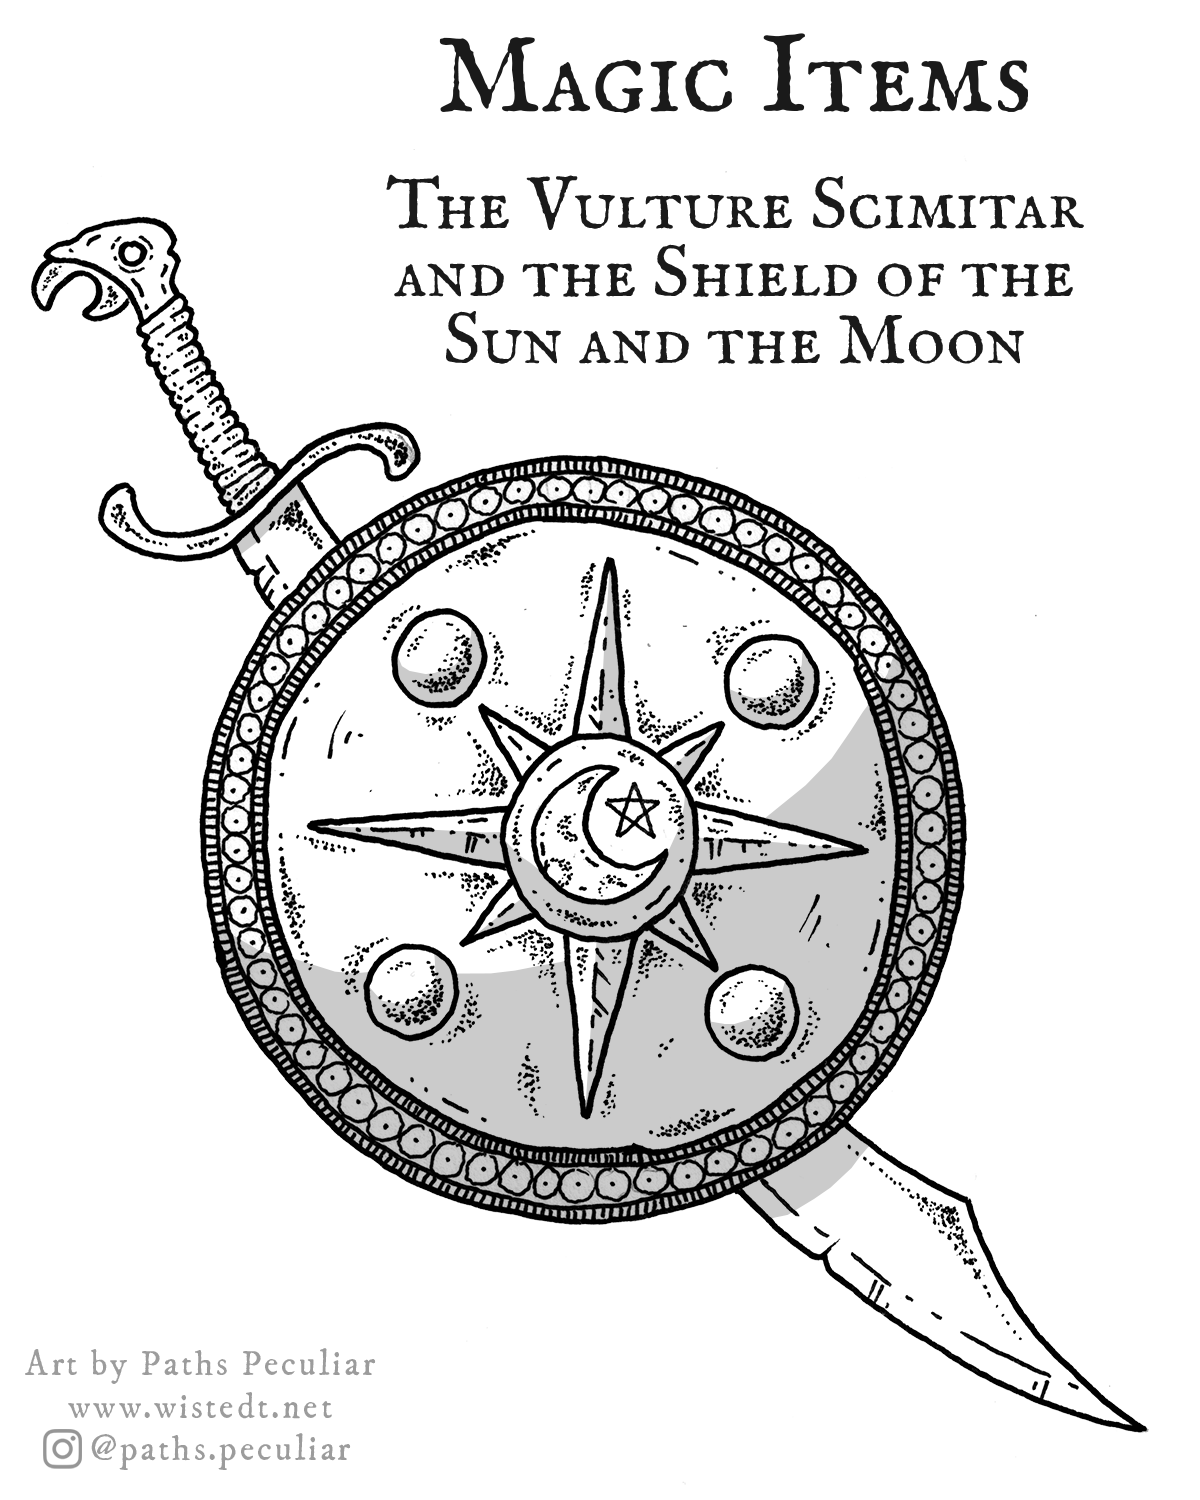 Magic items for D&D: The Vulture Scimitar and the Shield of the Sun and the Moon